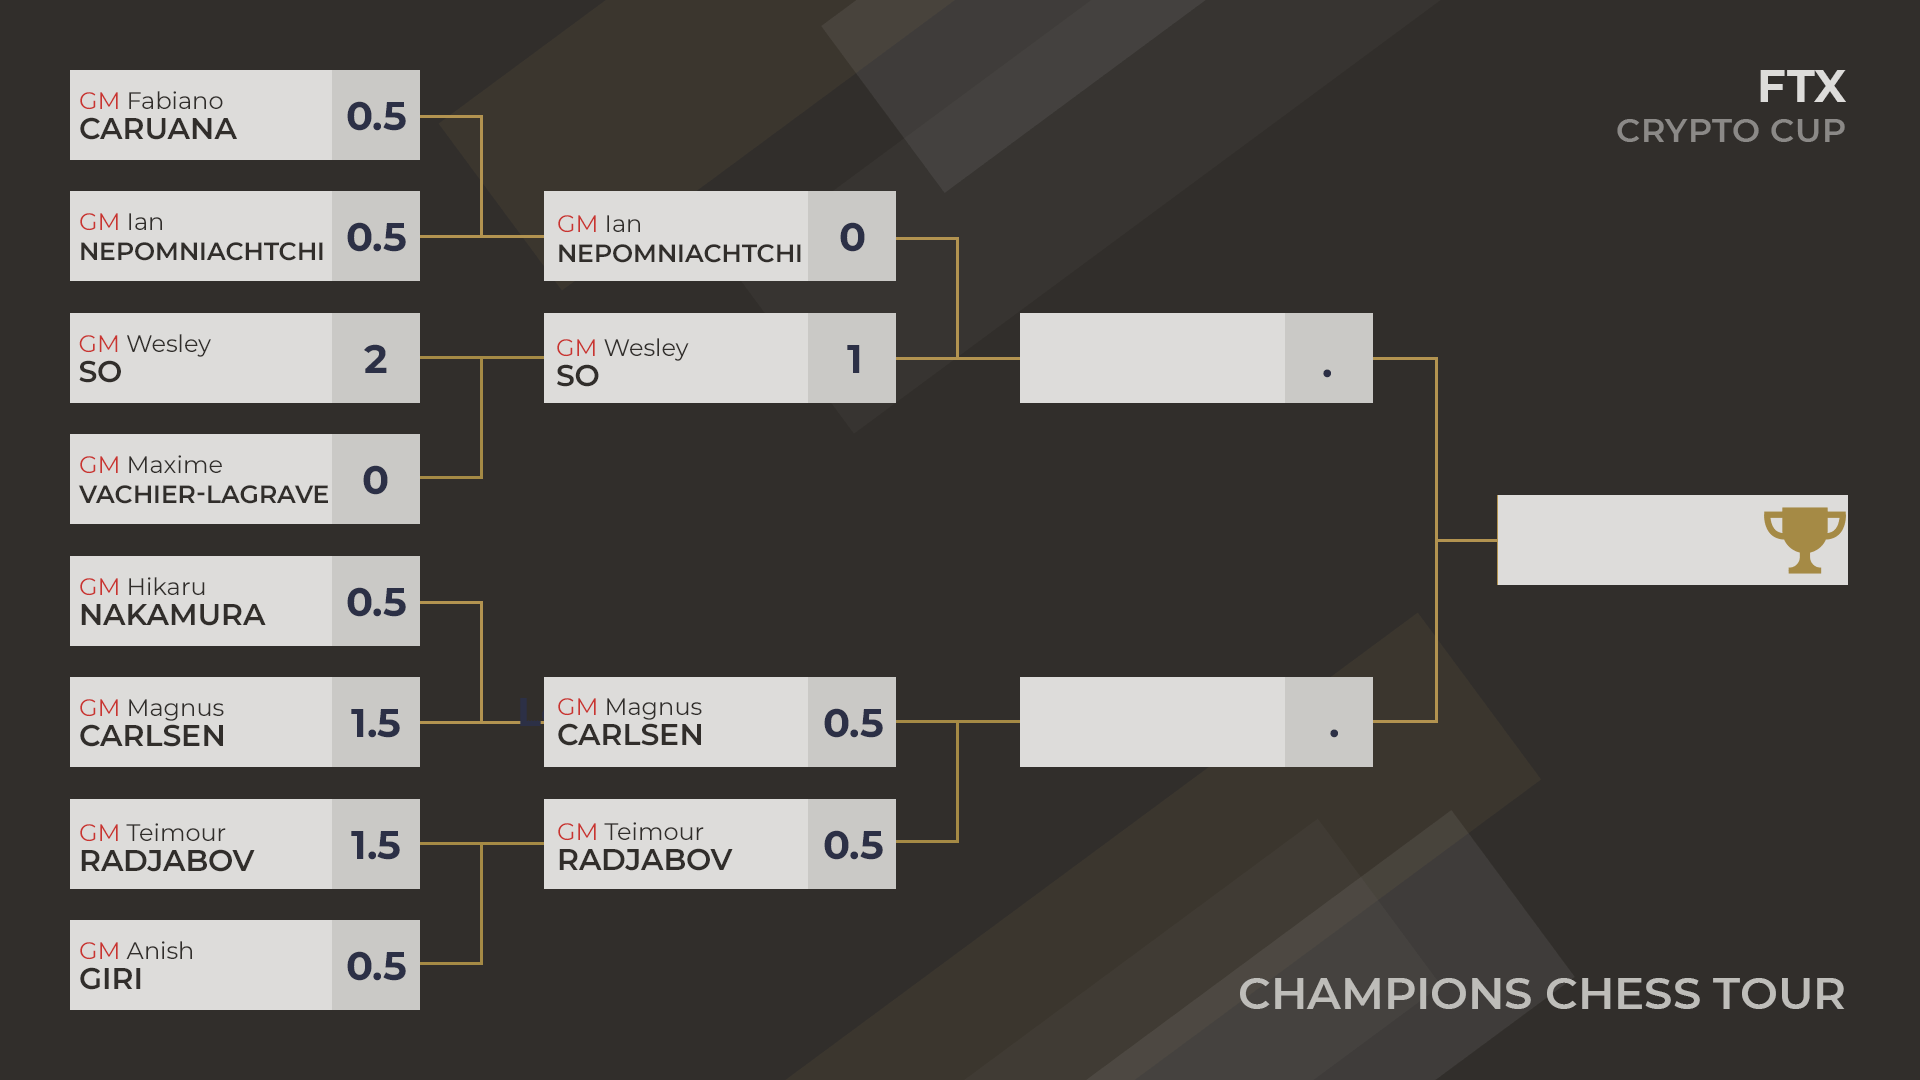 FXT Crypto Cup semifinals results